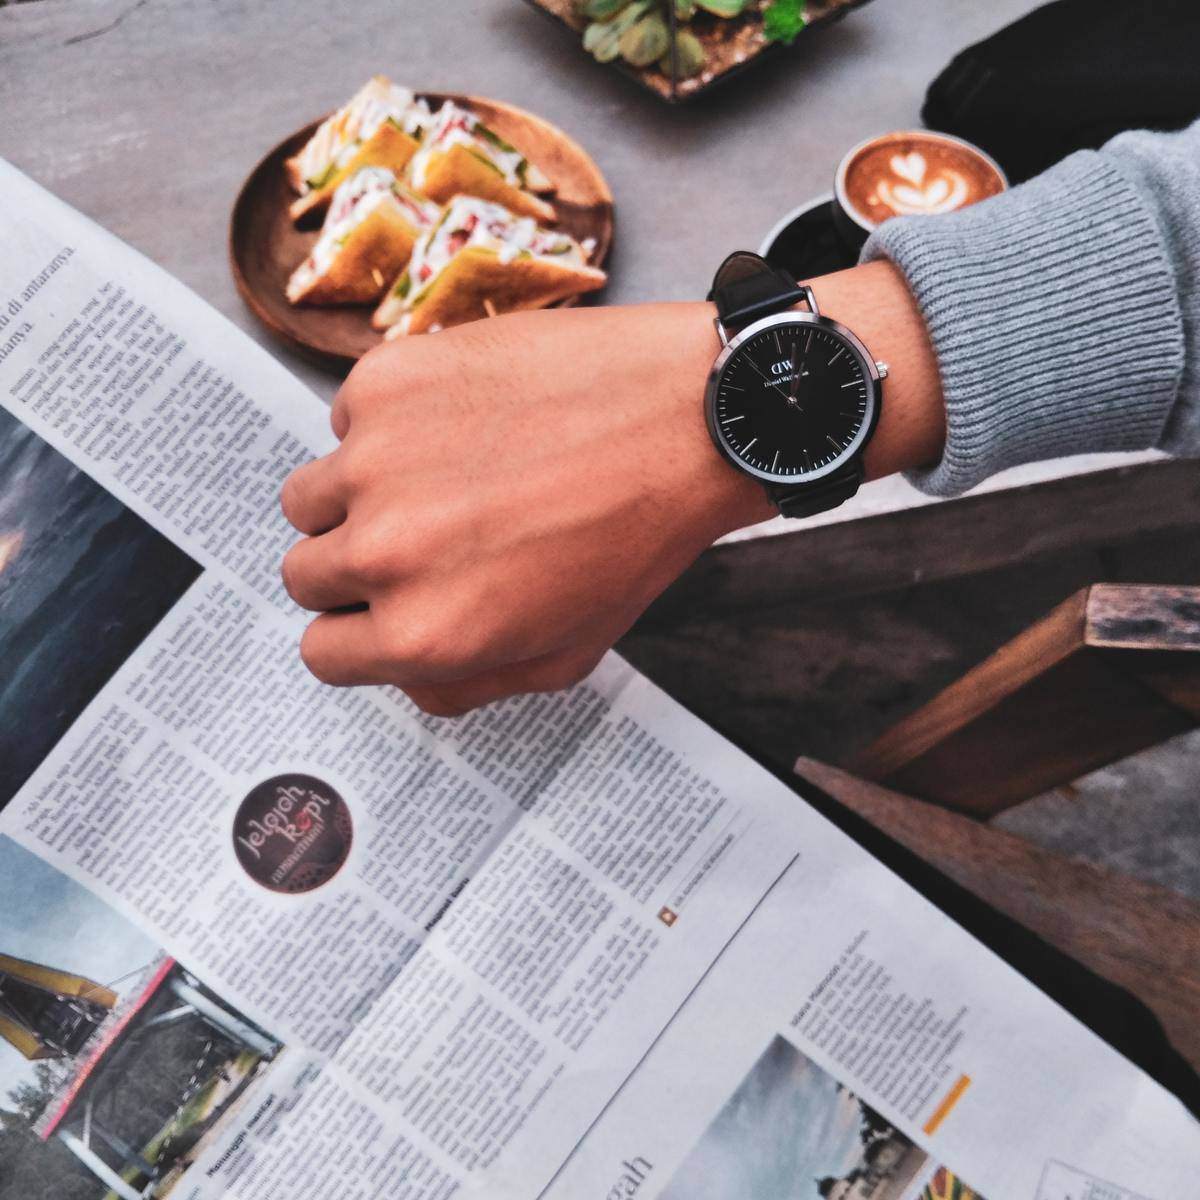 looking at watch over table with newspaper and sandwiches